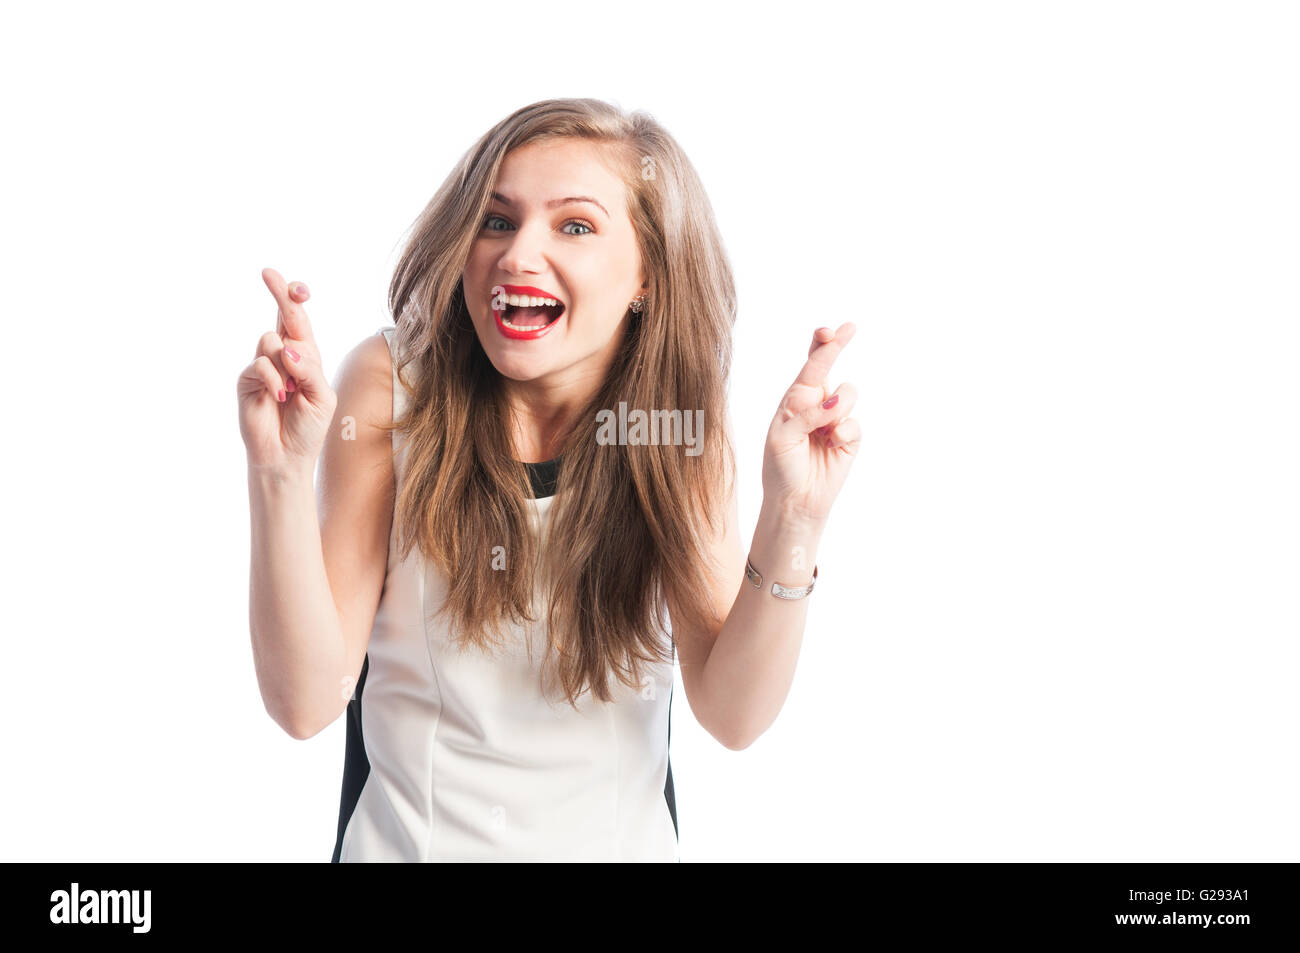 Woman holding fingers crossed - Stock Image